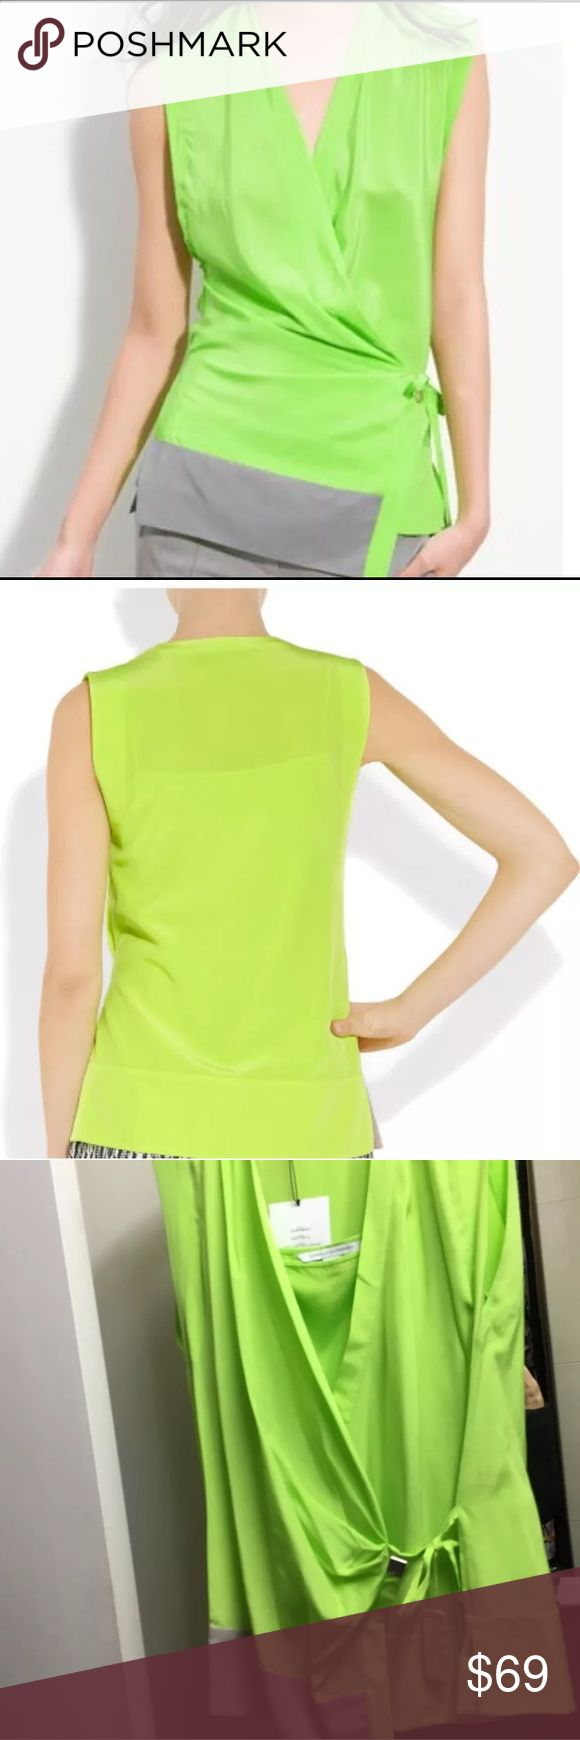 """NWT DVF Diane Von Furstenberg Aiko Silk Wrap Top This is a NEW With Tags DVF- Diane Von Furstenberg sleeveless Aiko Wrap Top in a size 12. 100% Authentic Designer piece! The vibrant neon color makes it a resort/Summer standout!  It is made of silk and features a crossover V neck. Logo DVF tie at side- wrap style and contrast grey trim at front.  Sleeveless. Separate Camisole lining.  Retail price: $265 * 27"""" long, measured from shoulder. * Fabrication: Woven silk. * 100% silk. Diane von…"""